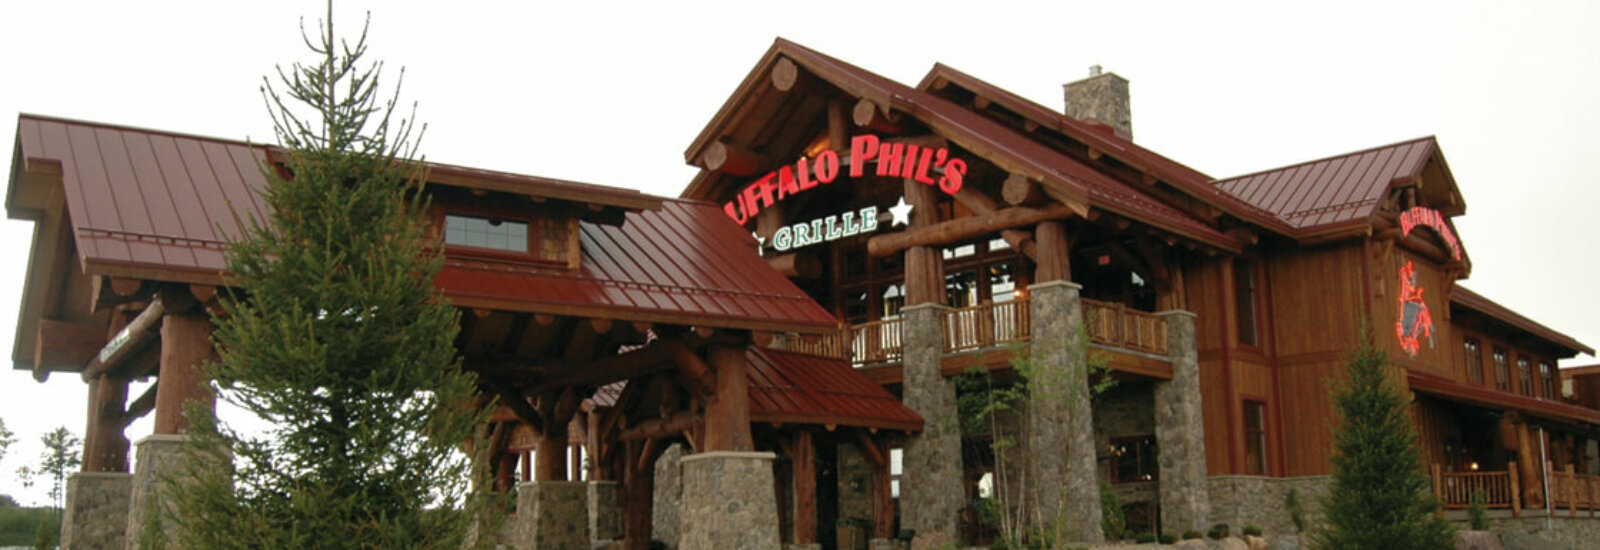 Family Friendly Dining in Wisconsin Dells